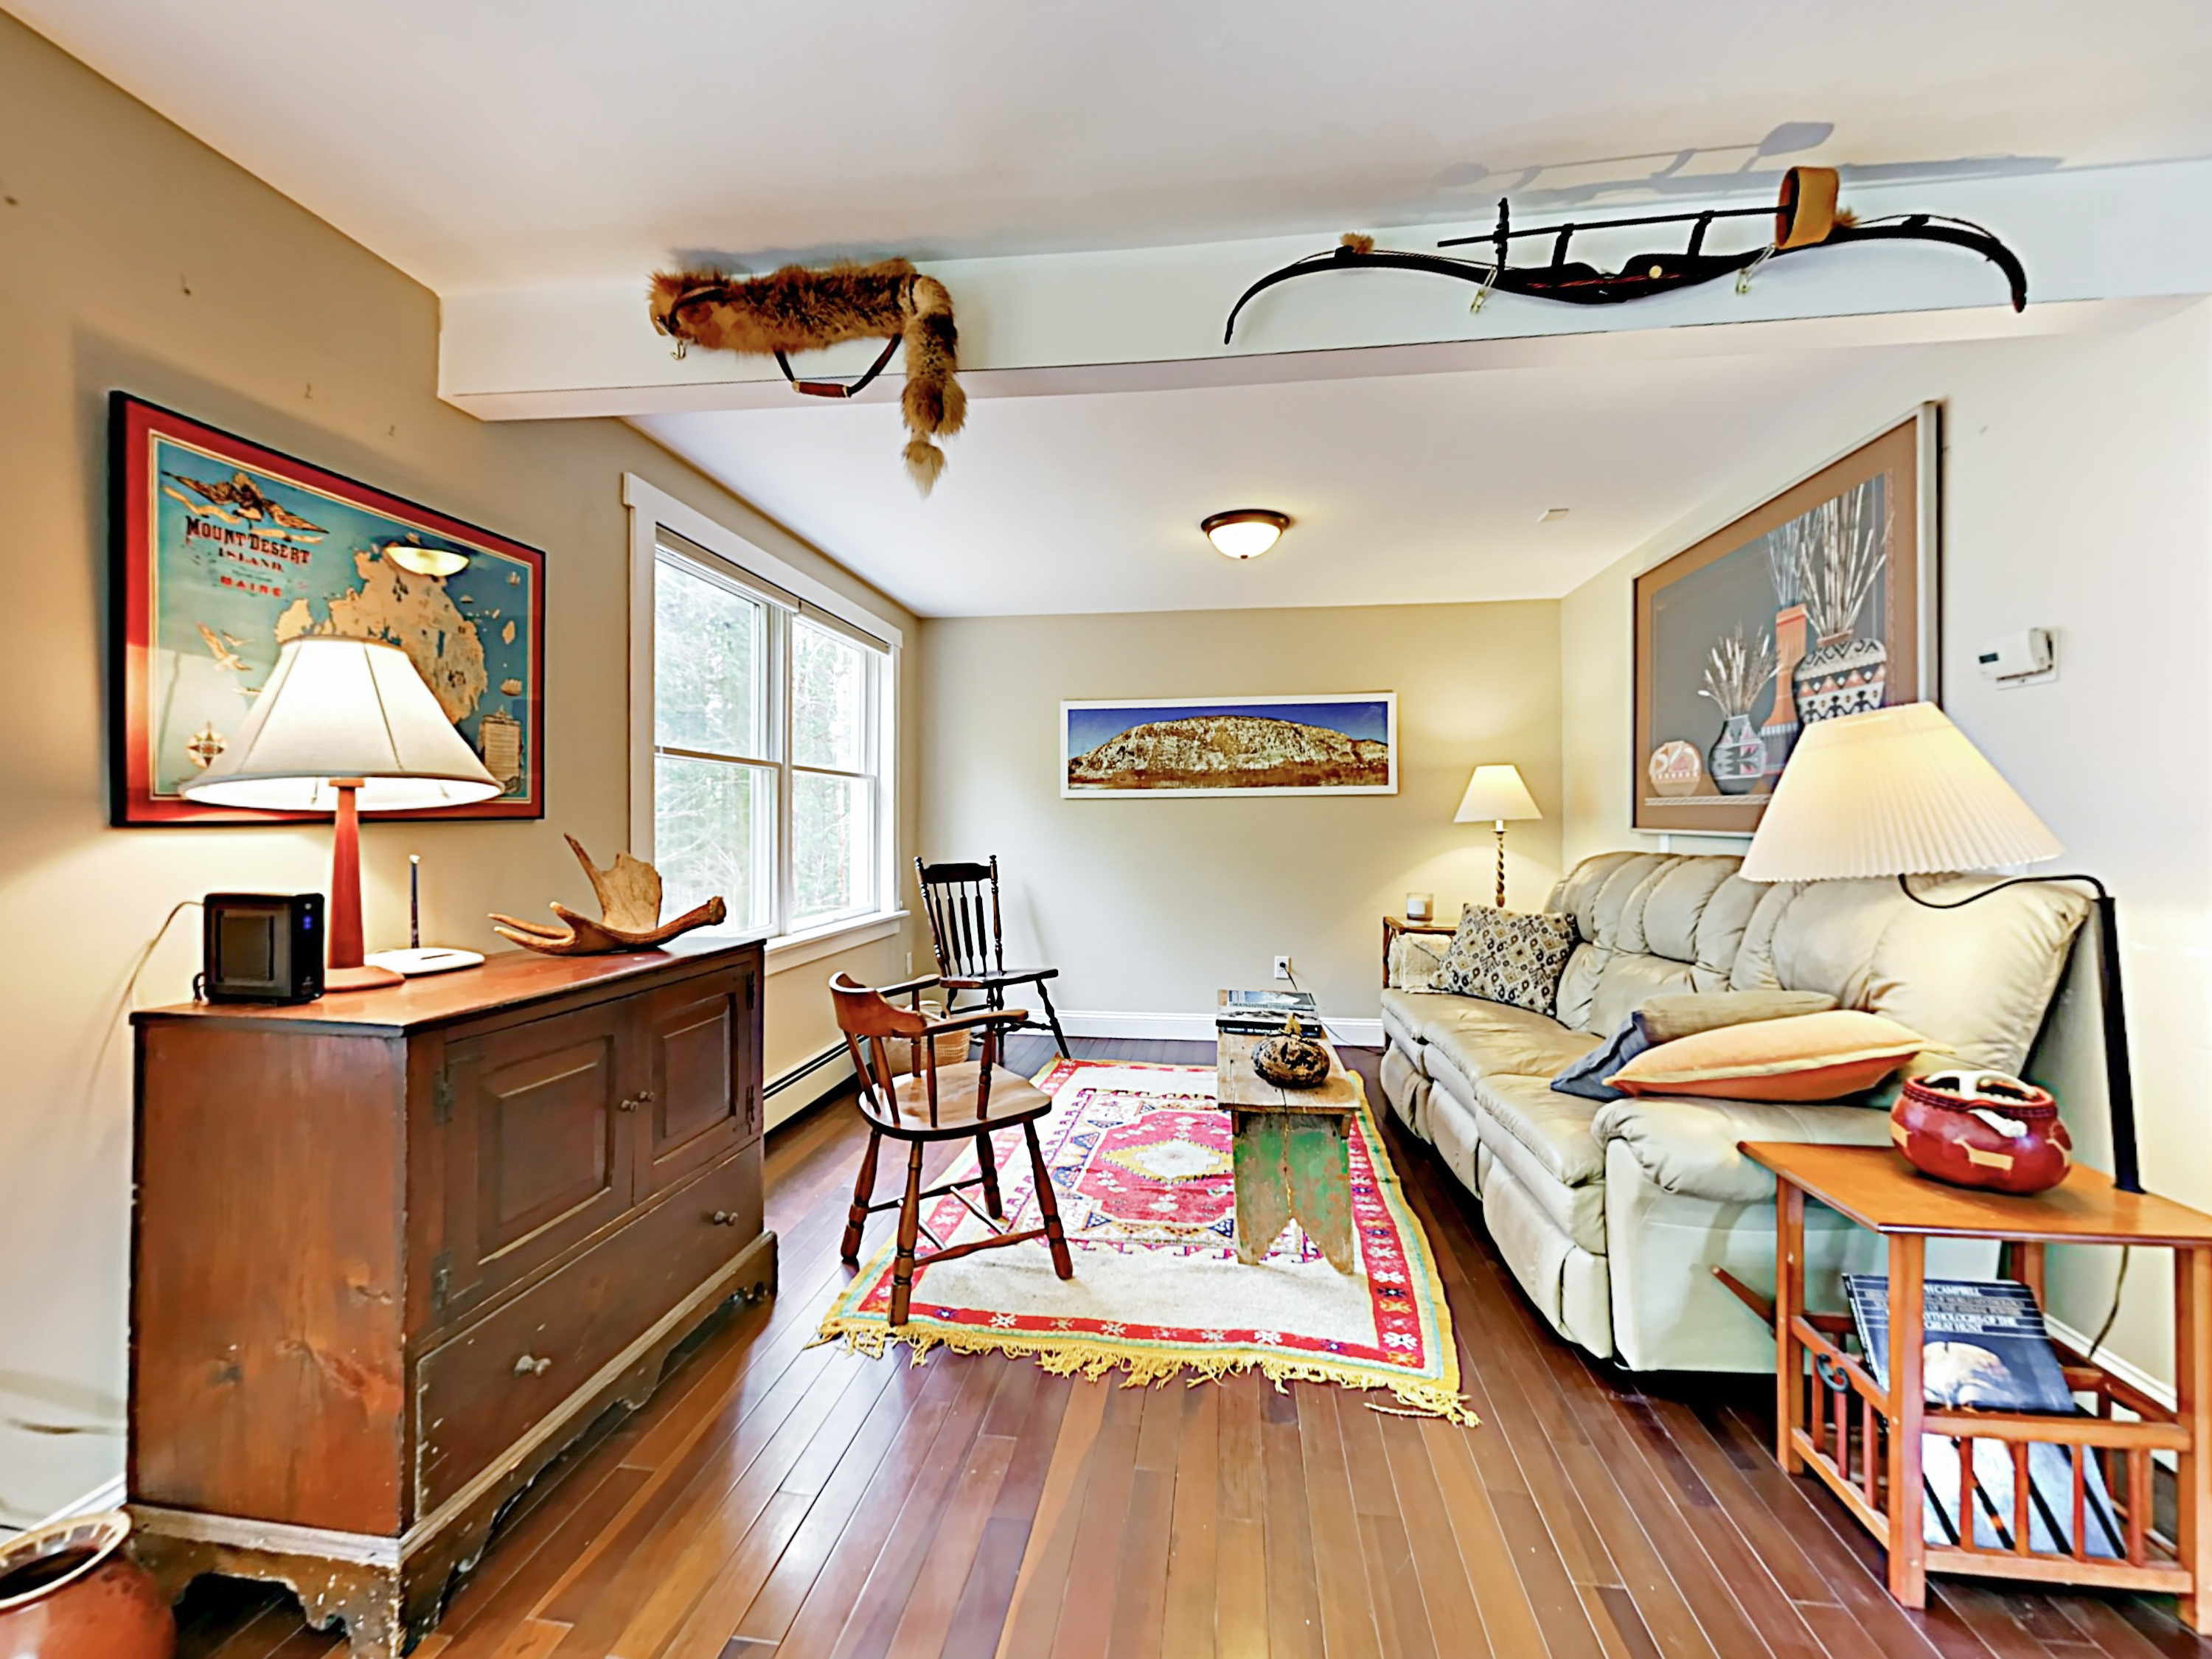 Bar Harbor ME Vacation Rental Welcome to Bar